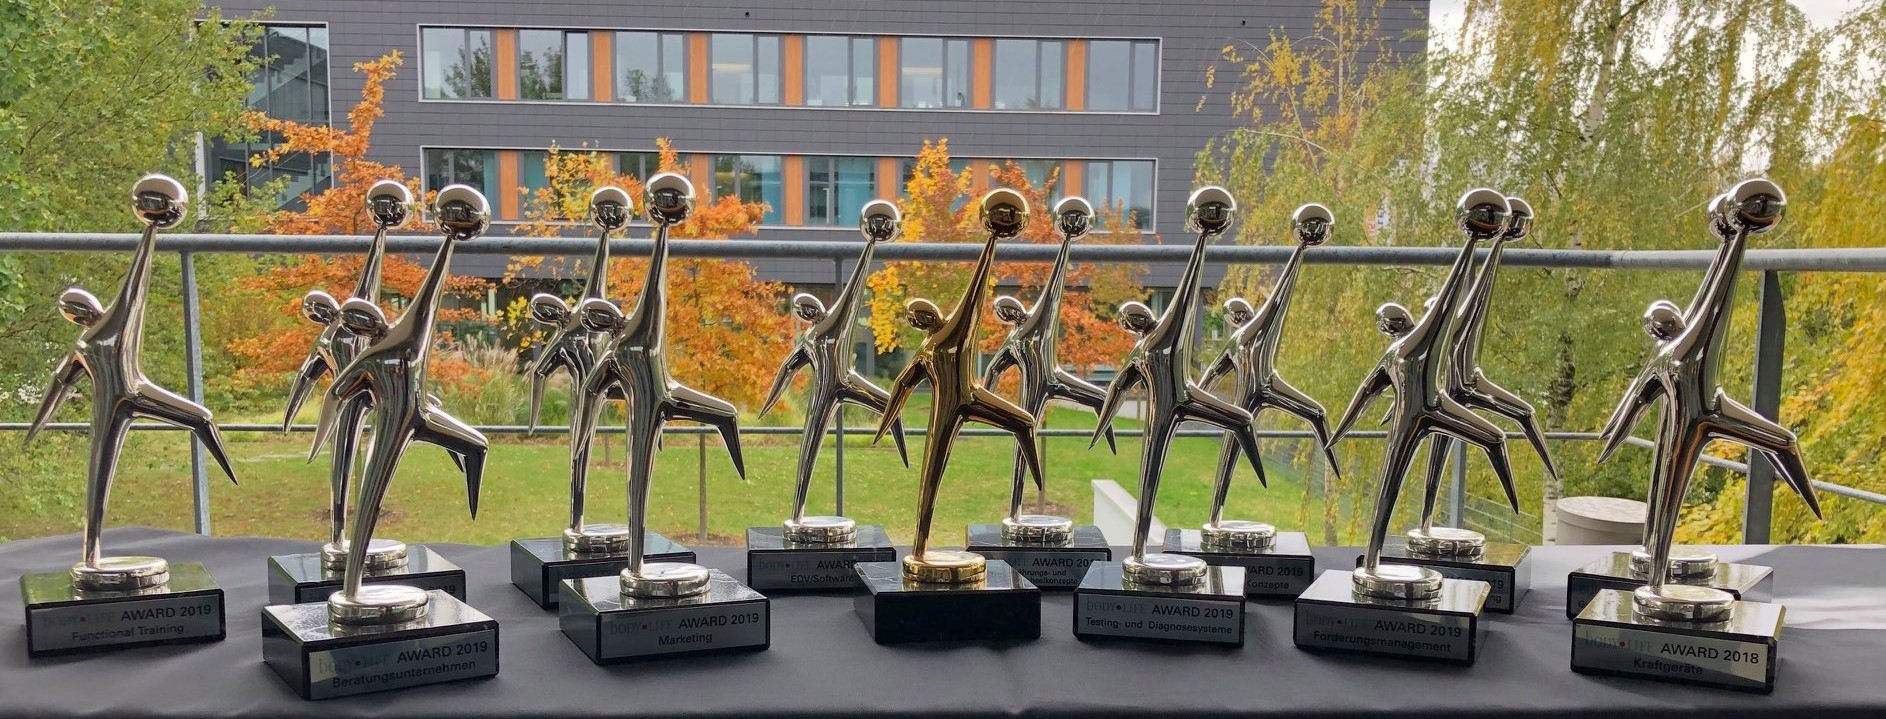 easySolution gewinnt Body Life Award 2019